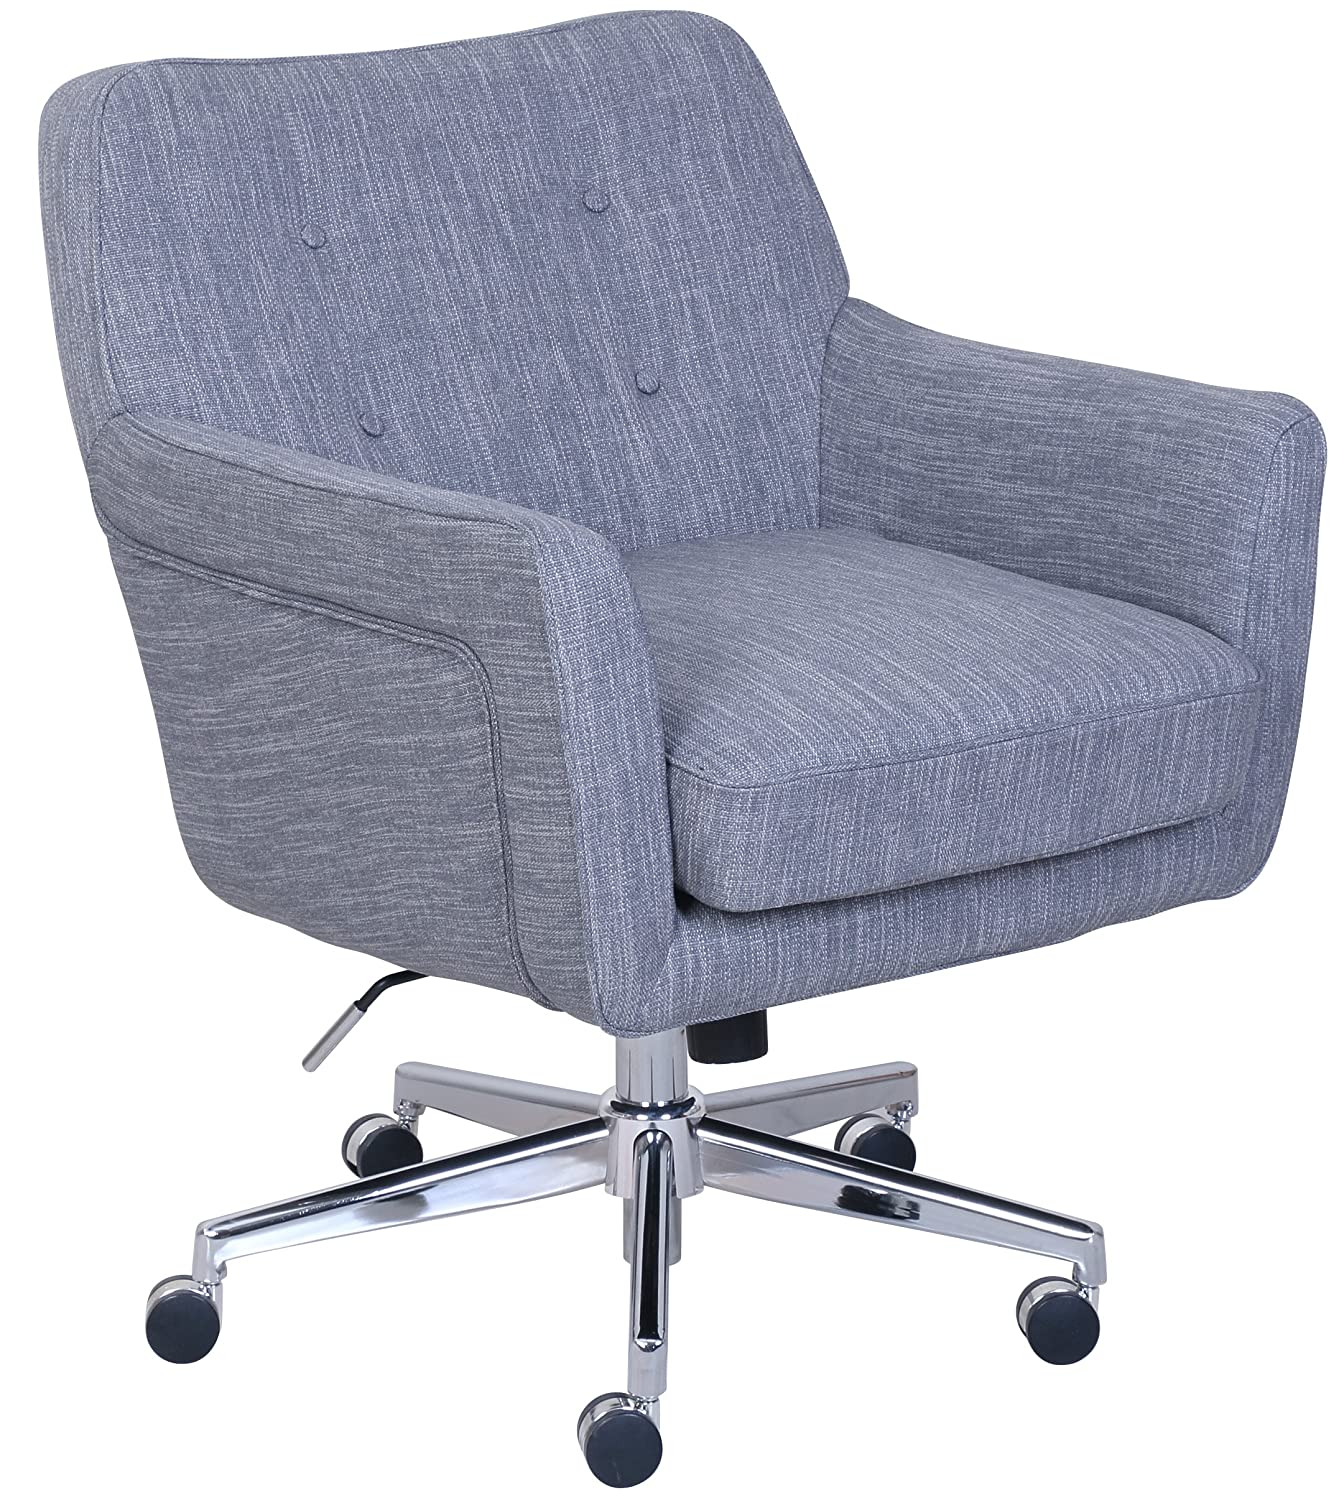 Amazon Serta Style Ashland Home fice Chair Twill Fabric